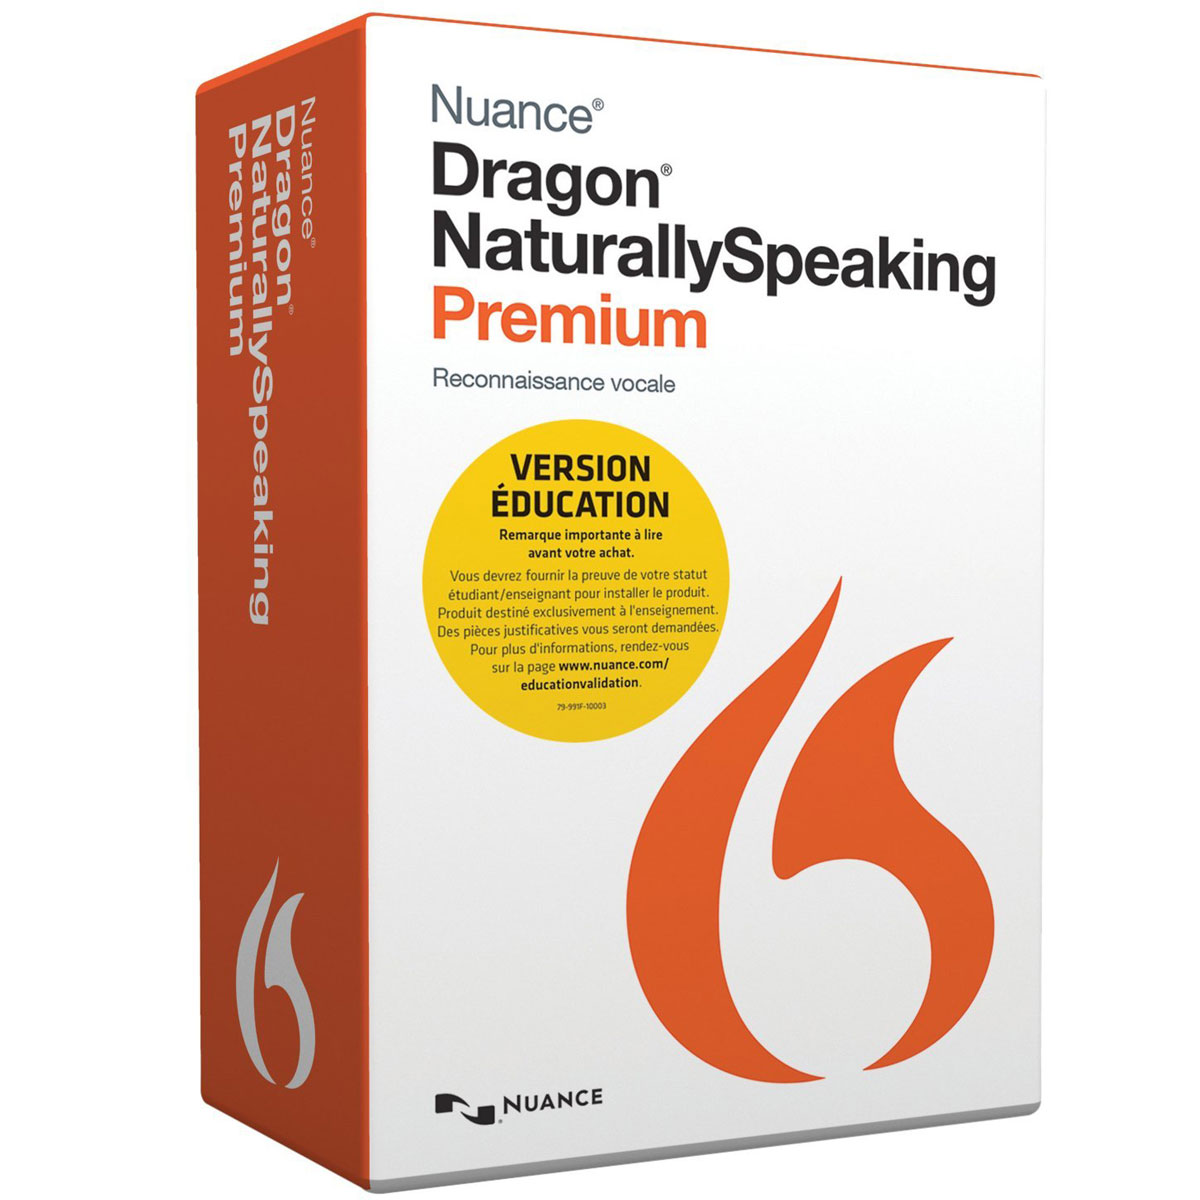 Nuance dragon naturallyspeaking premium 13 education fran ais windows logiciel bureautique - Pack office mac gratuit francais ...